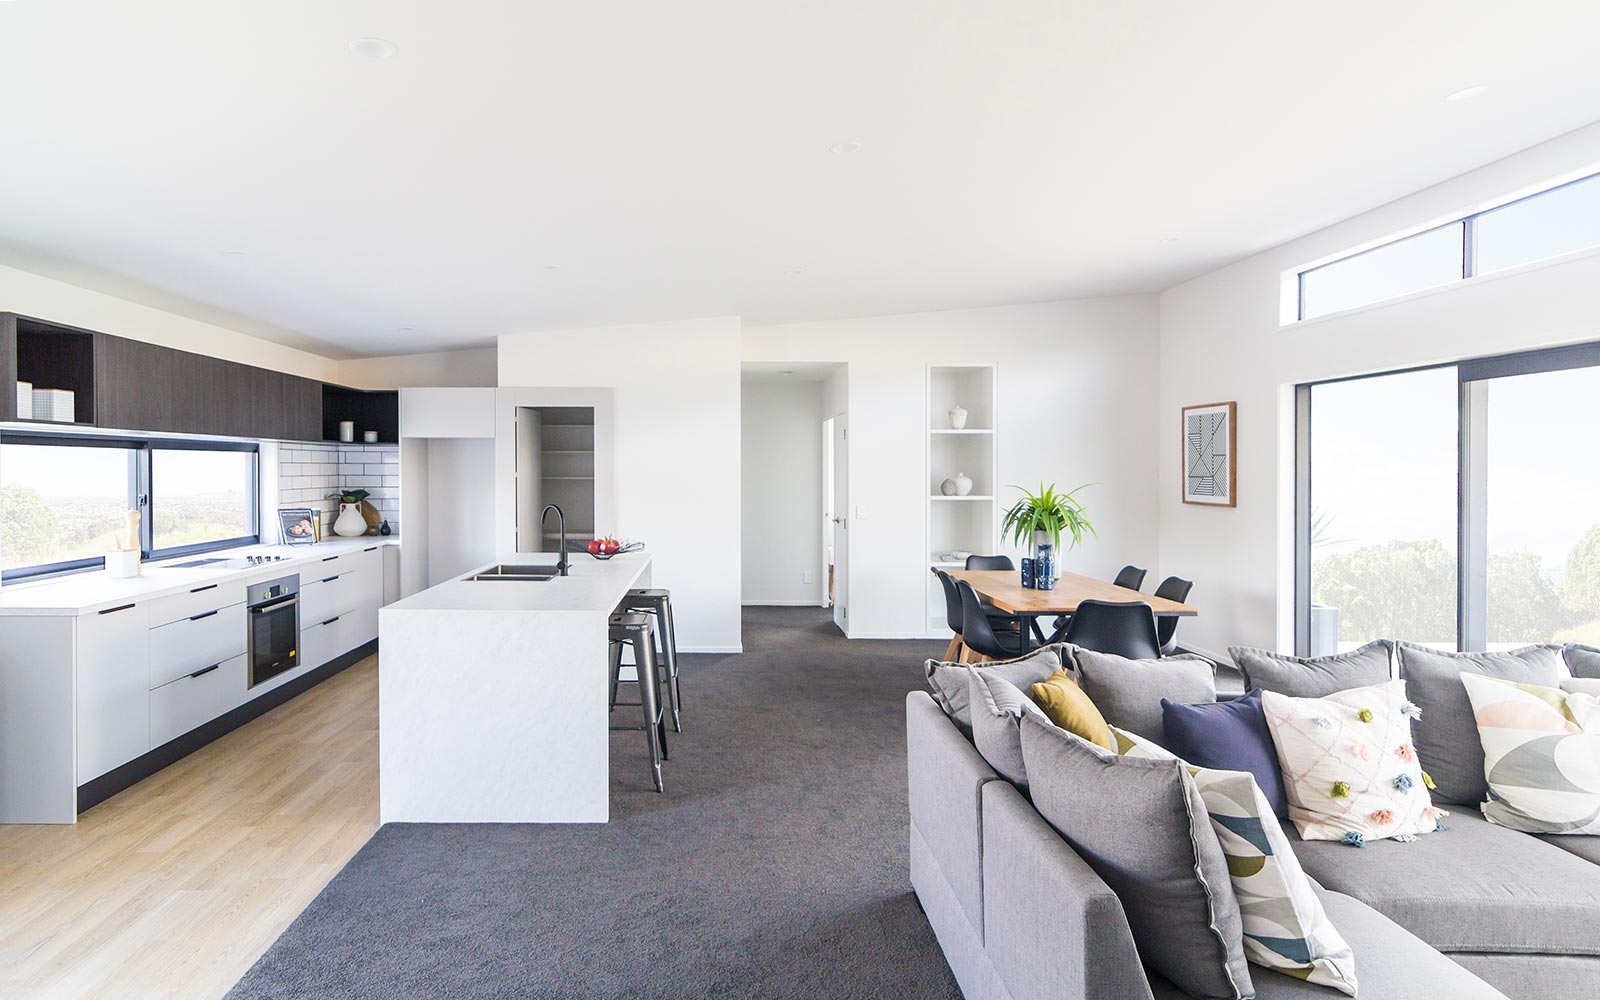 homes for sale auckland new zealand